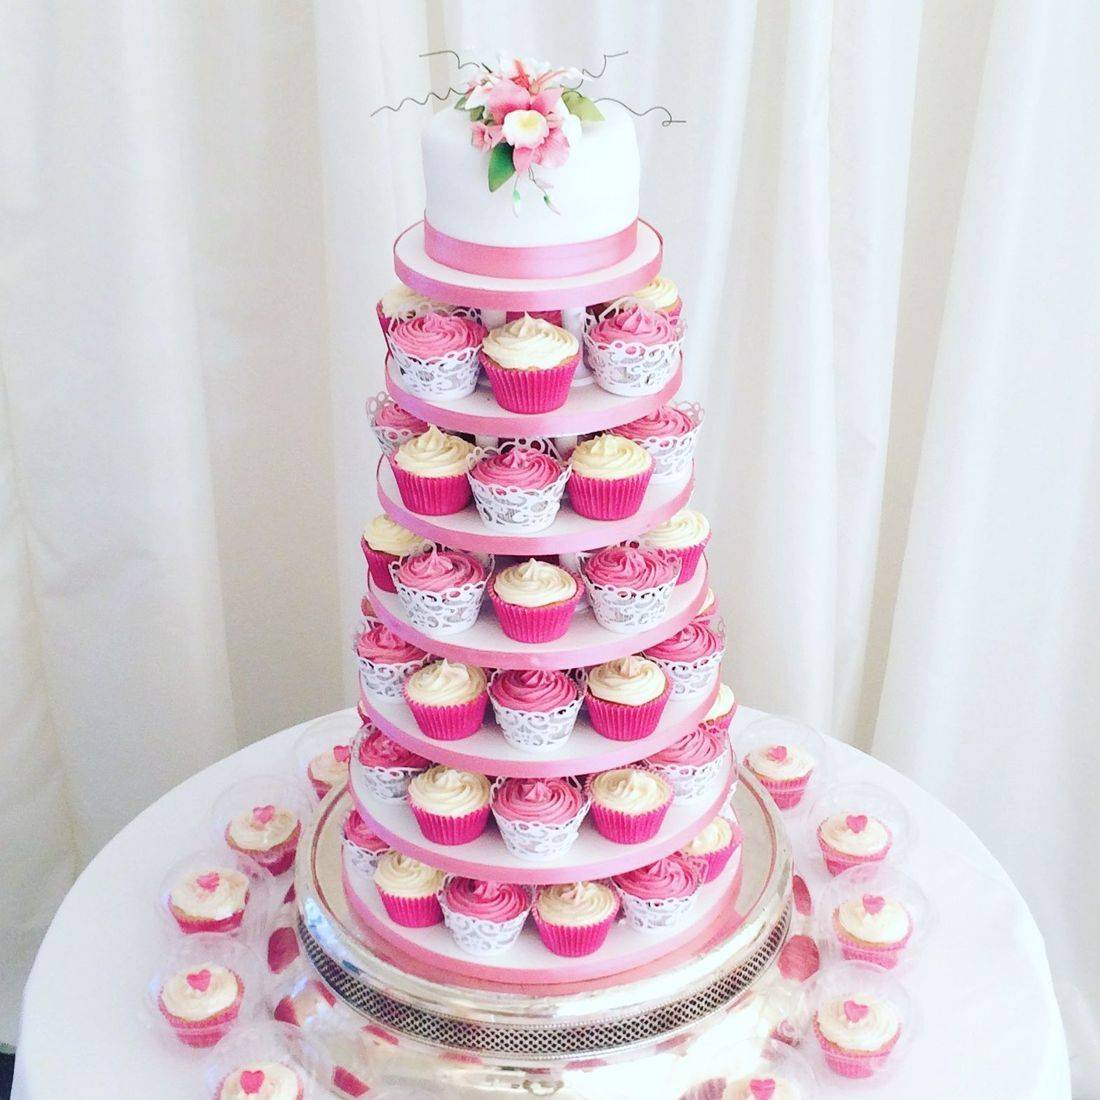 Cupcake Tower pink orchids Buttercream swirls Wedding Cake Fabu-Lous Cakes